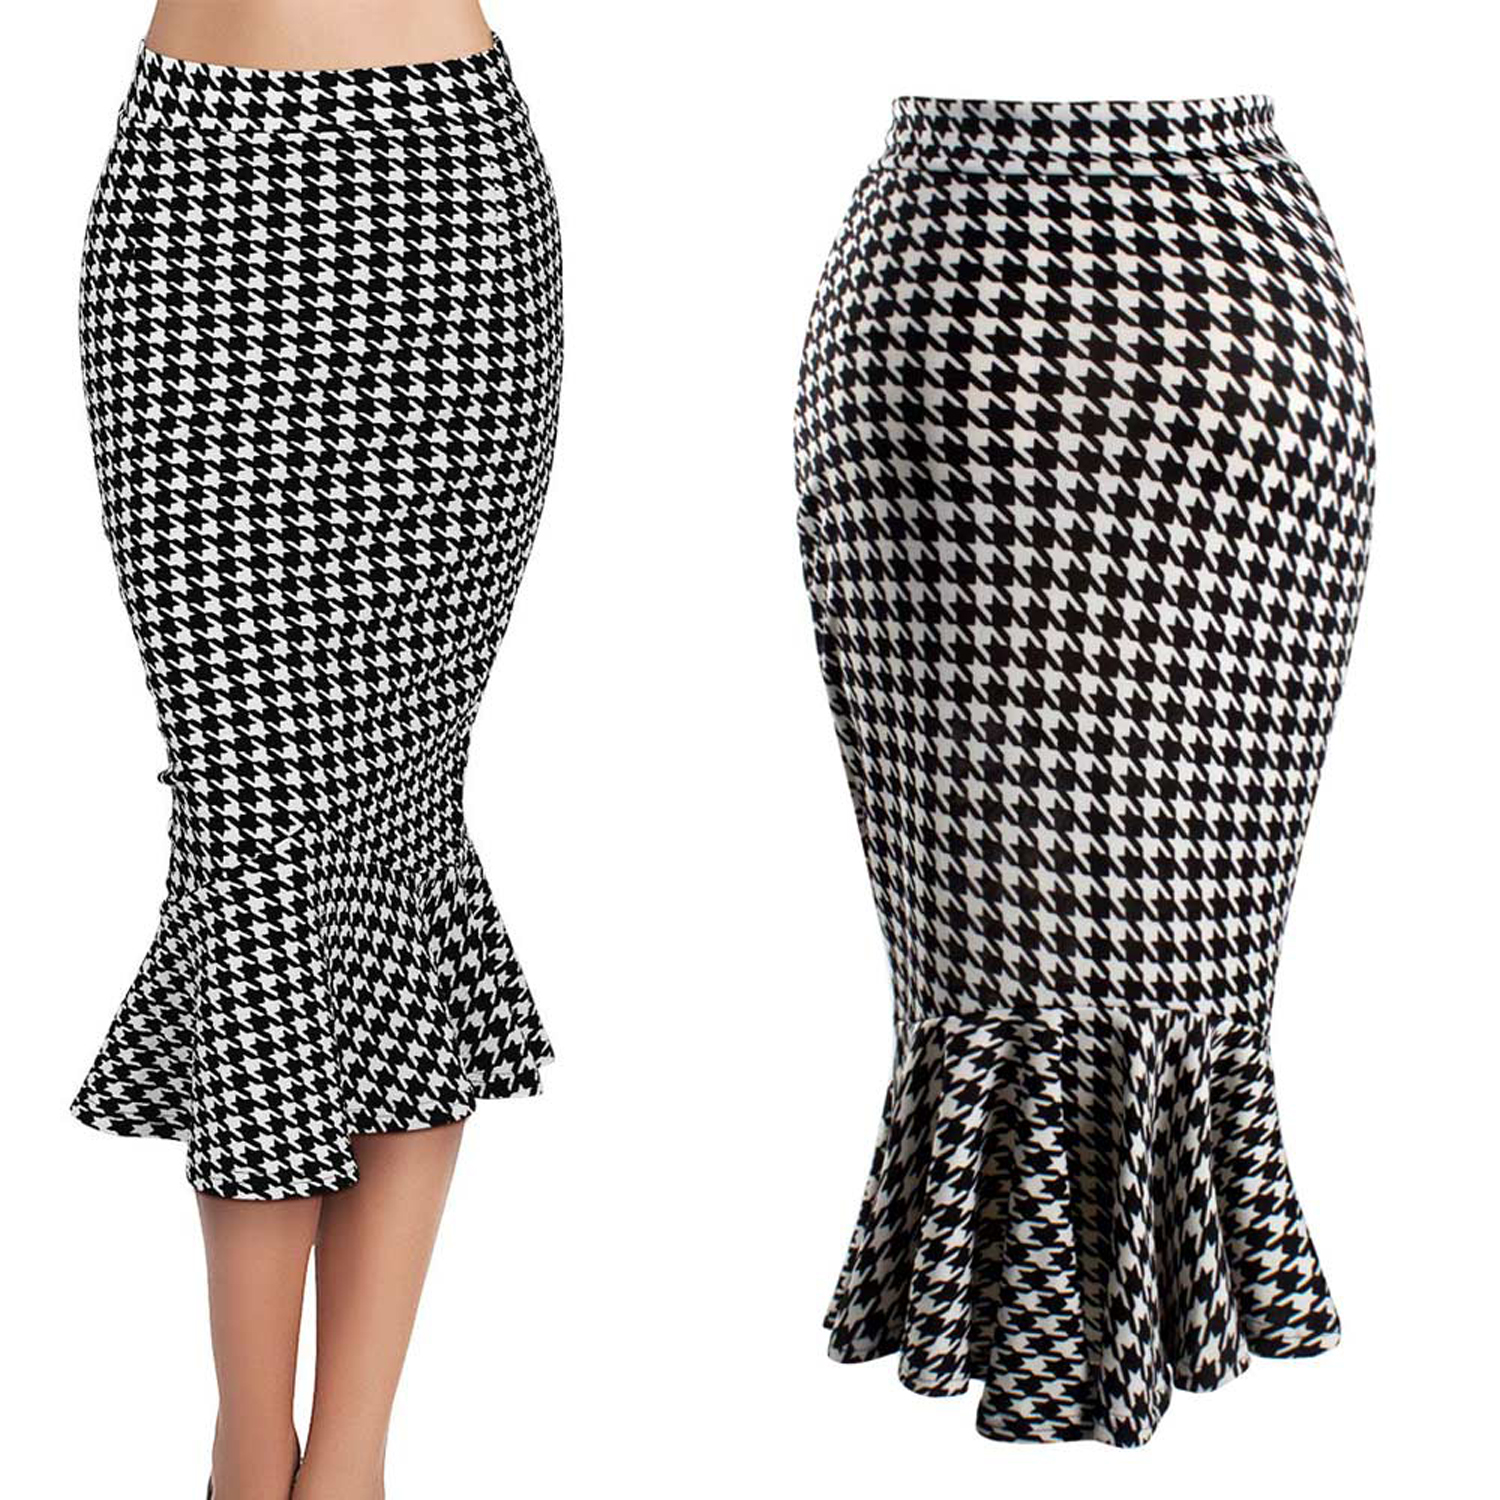 Popular Houndstooth Pencil Skirt-Buy Cheap Houndstooth Pencil ...